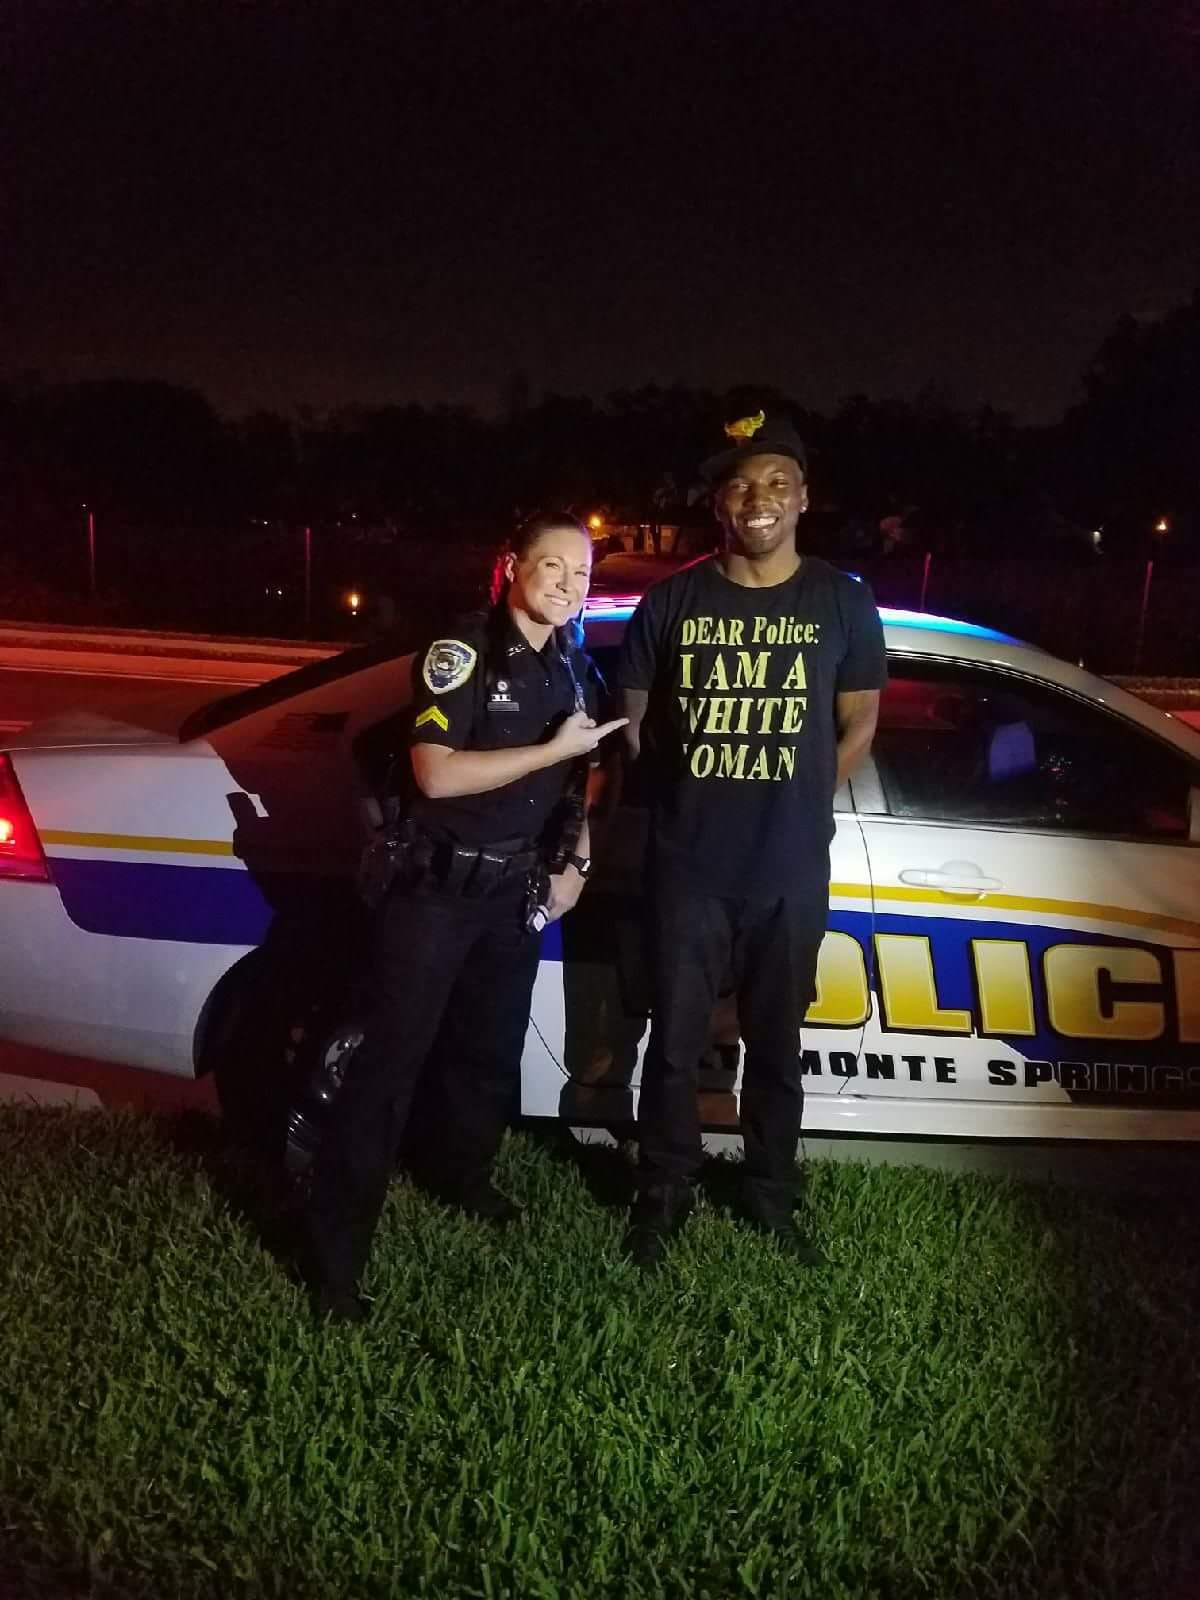 Just another friendly traffic stop